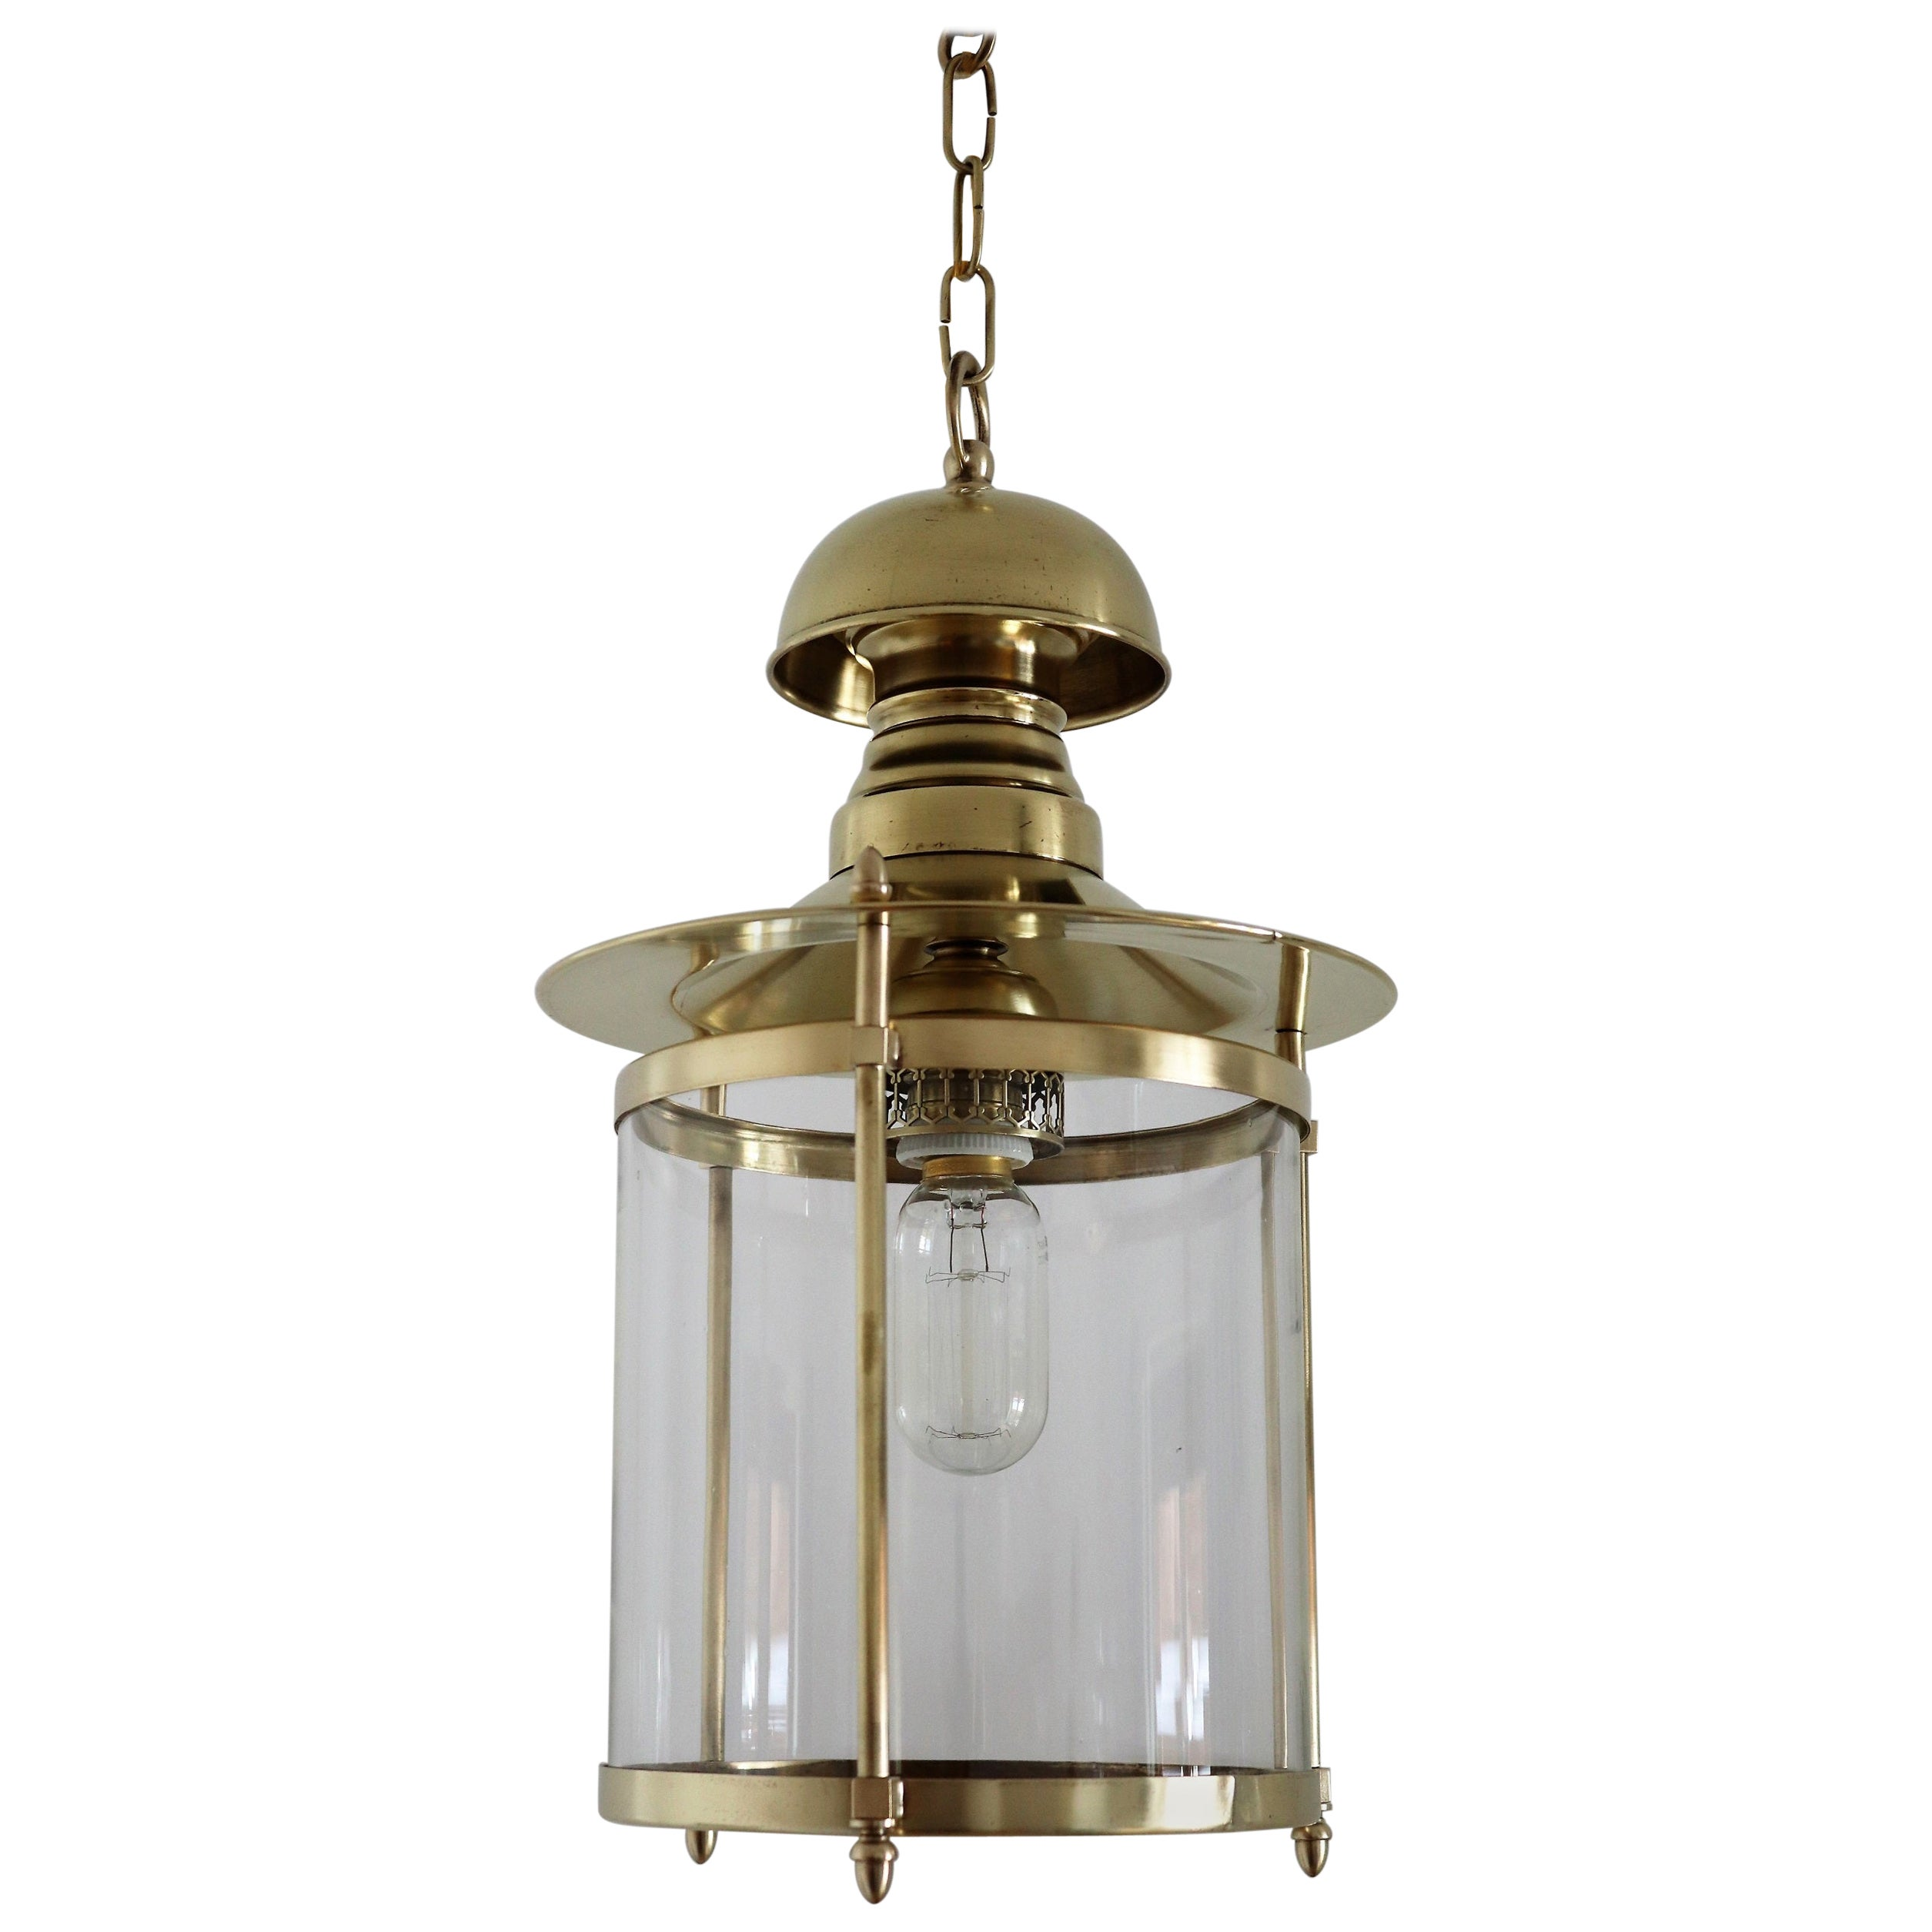 Italian Midcentury Brass and Glass Pendant Lamp or Lantern, 1970s